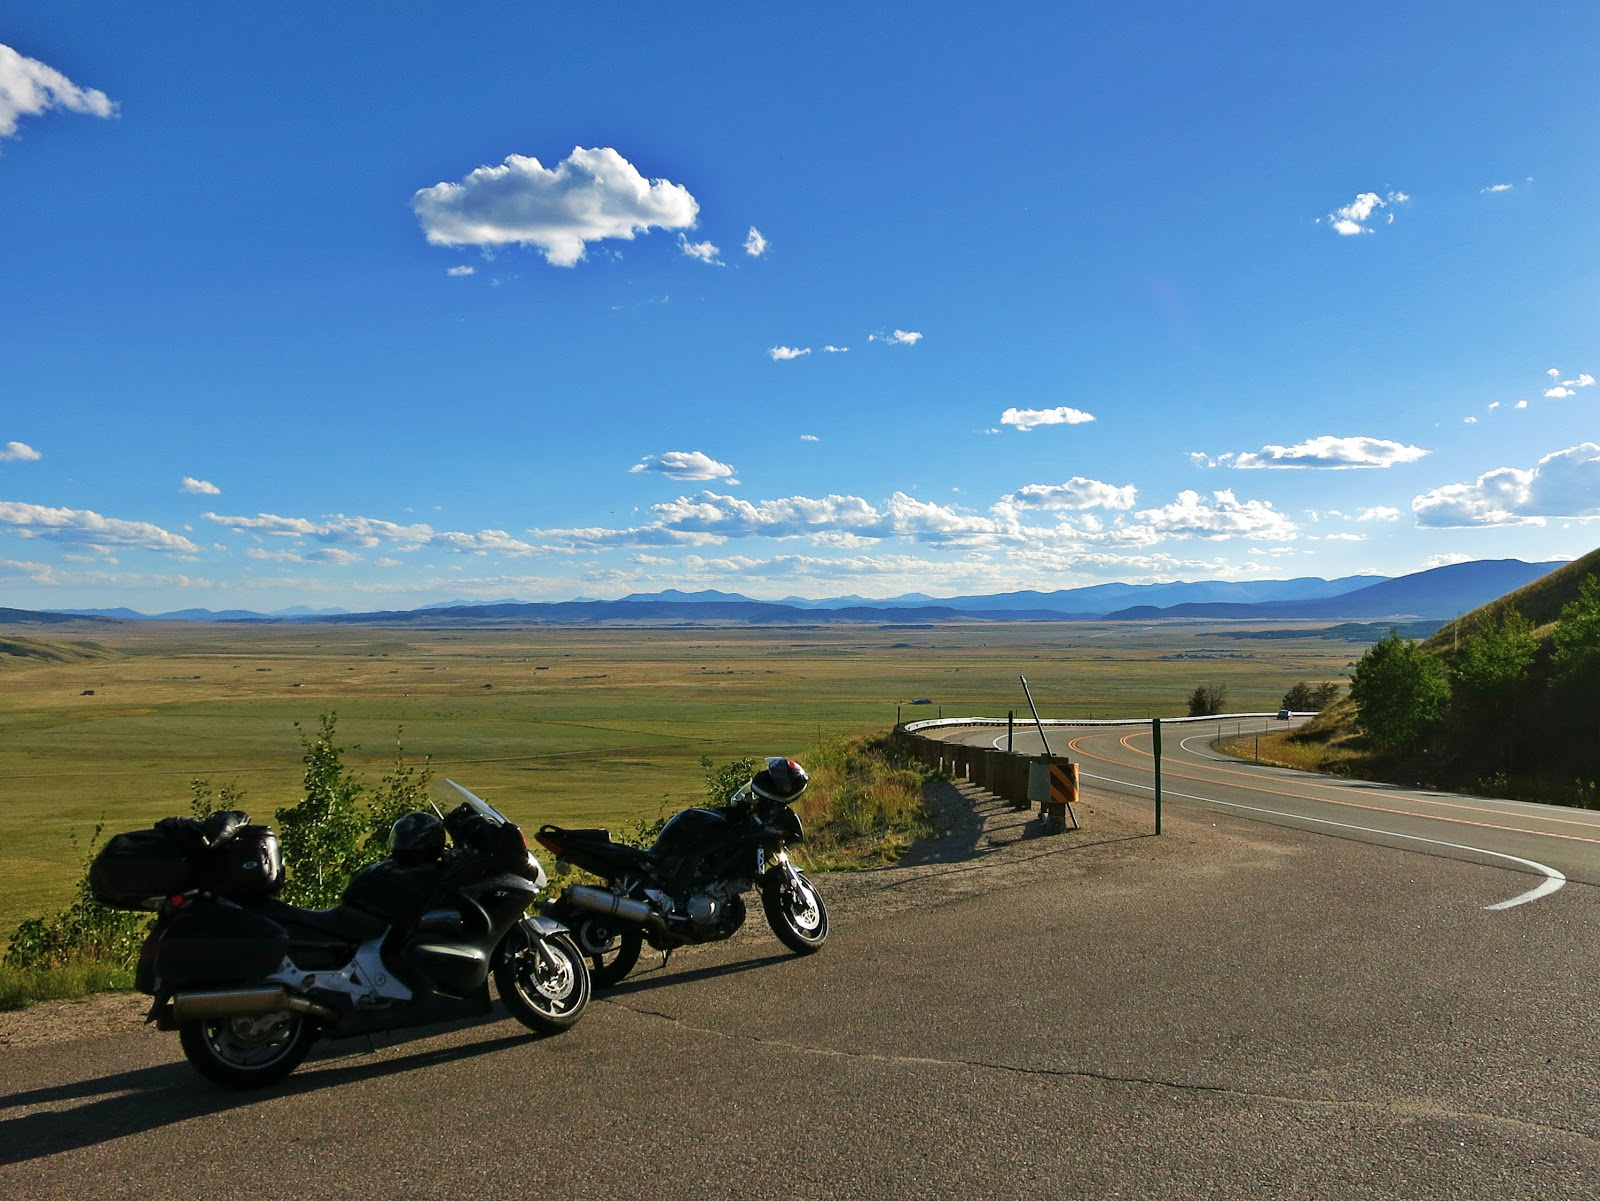 kenosha pass colorado